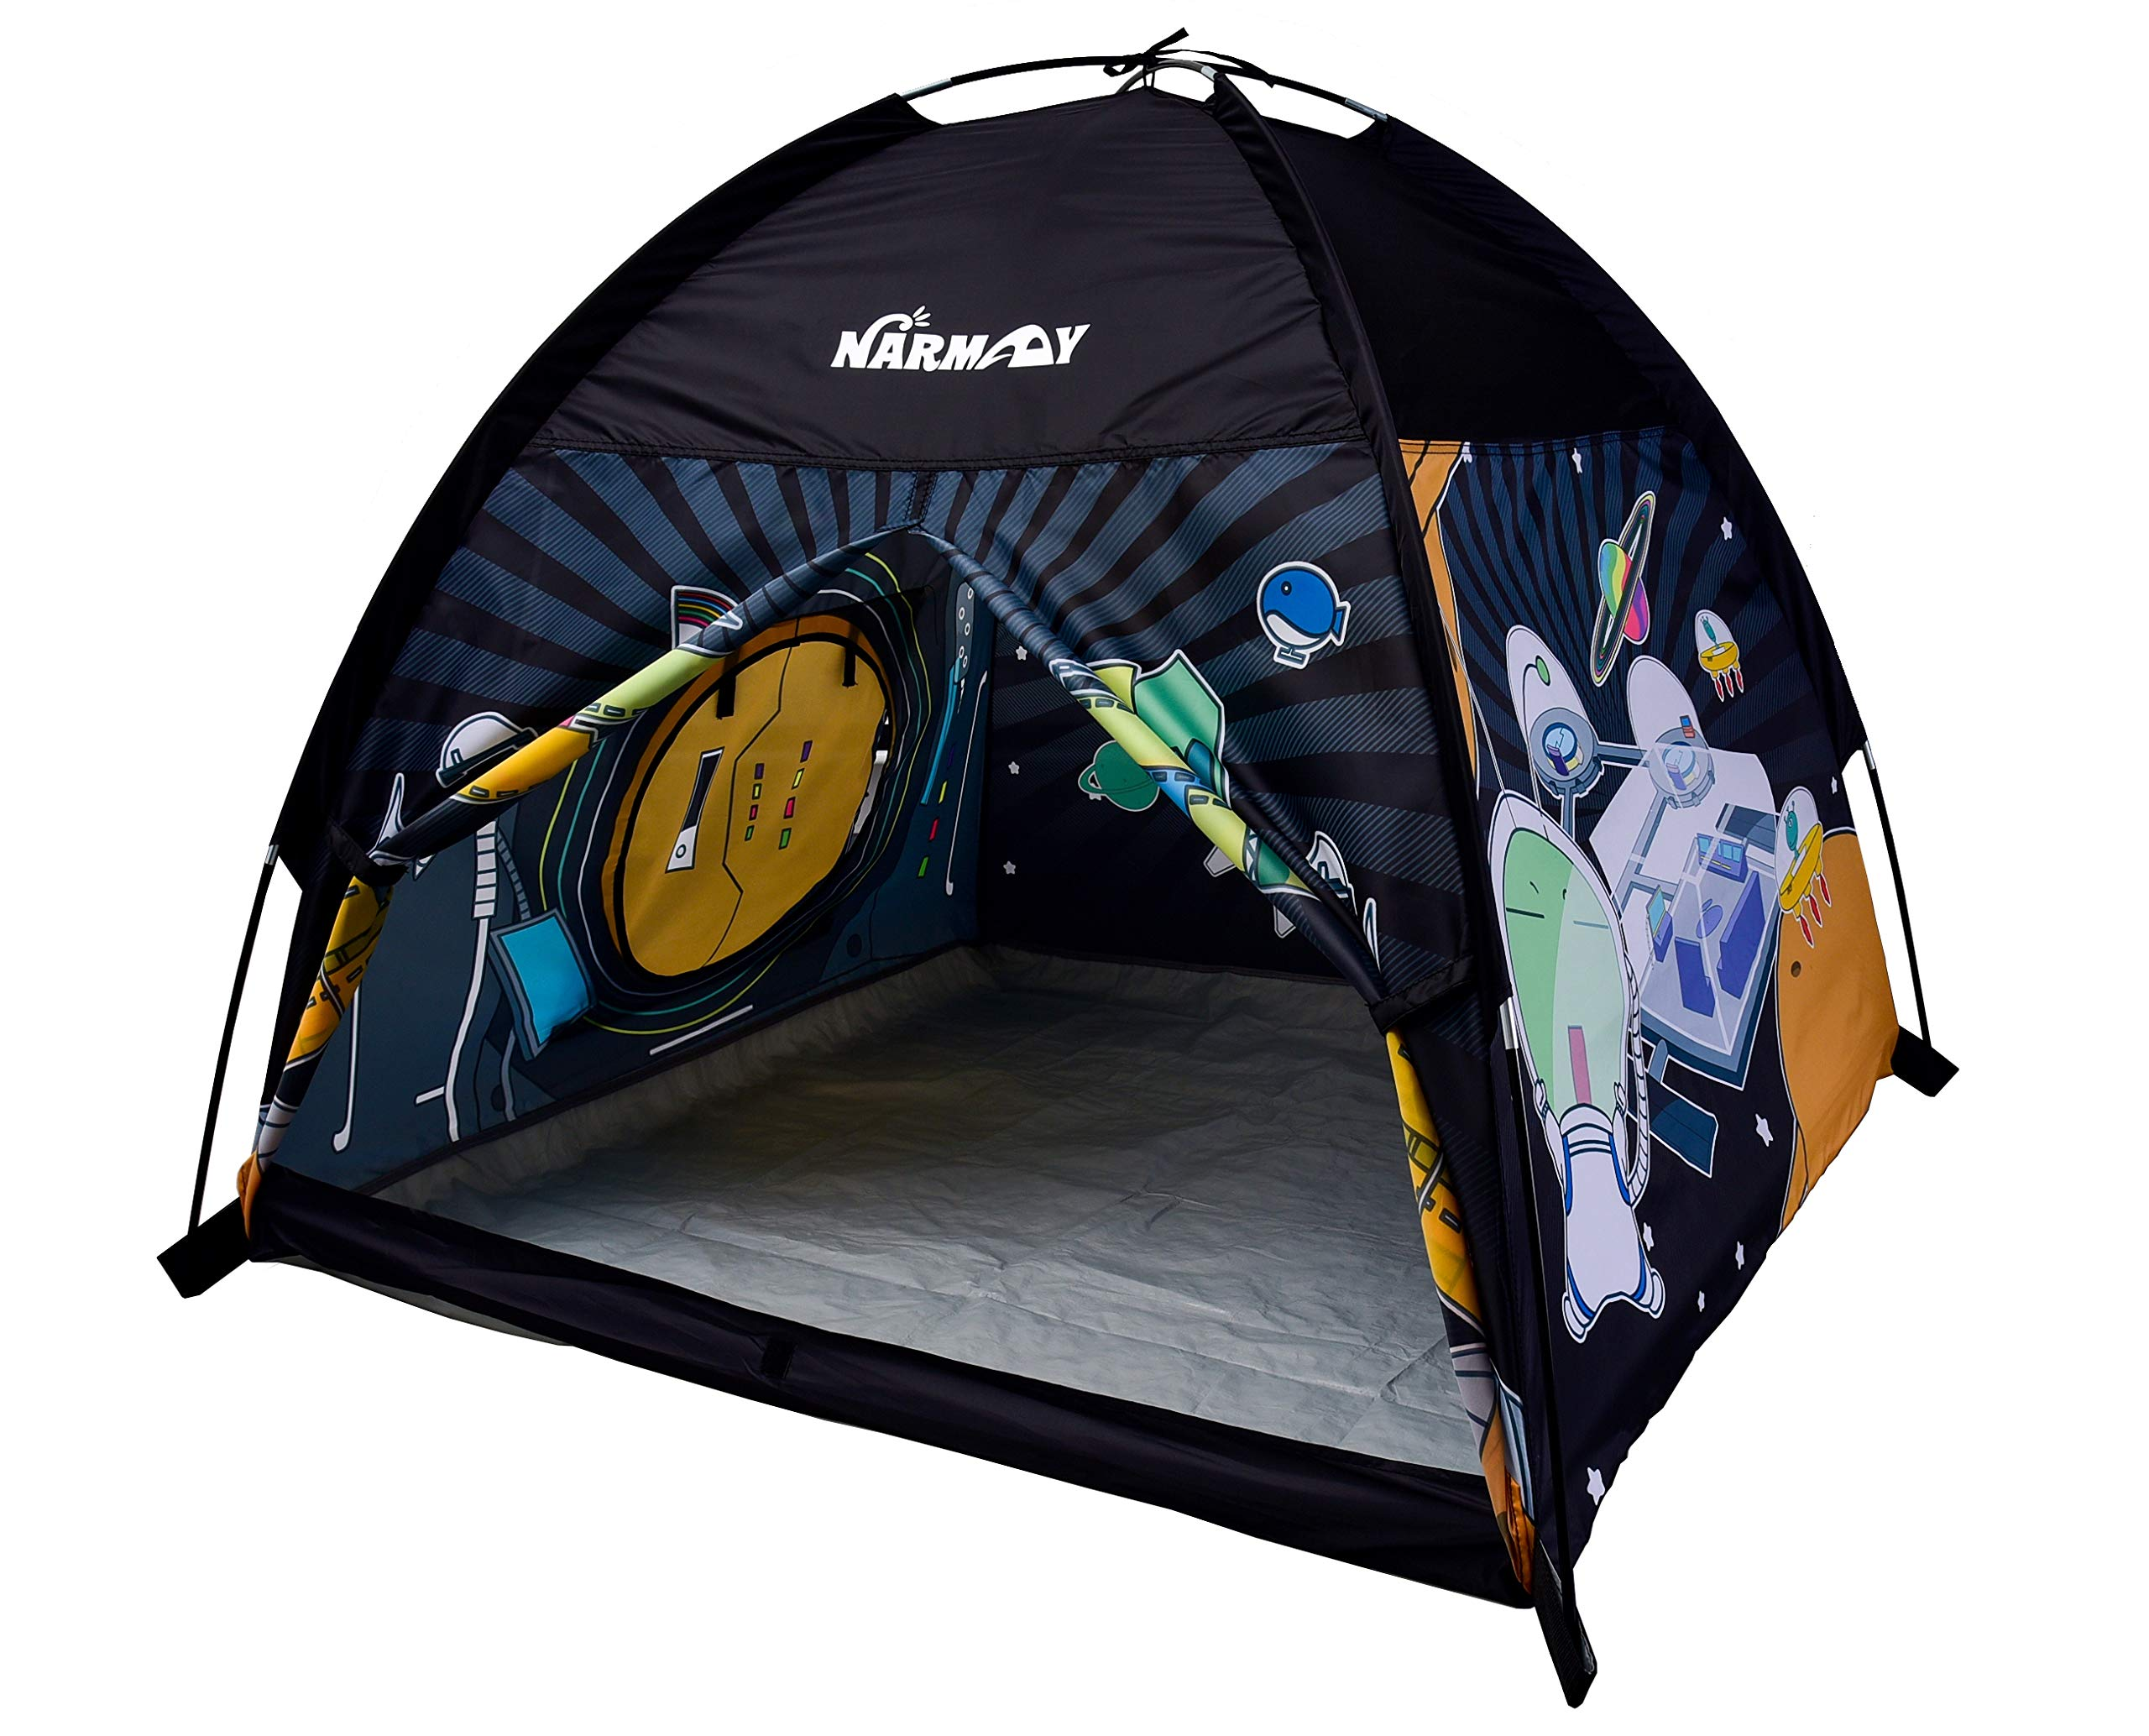 NARMAY Play Tent Space World Dome Tent for Kids Indoor / Outdoor Fun - 48 x 48 x 40 inch by NARMAY